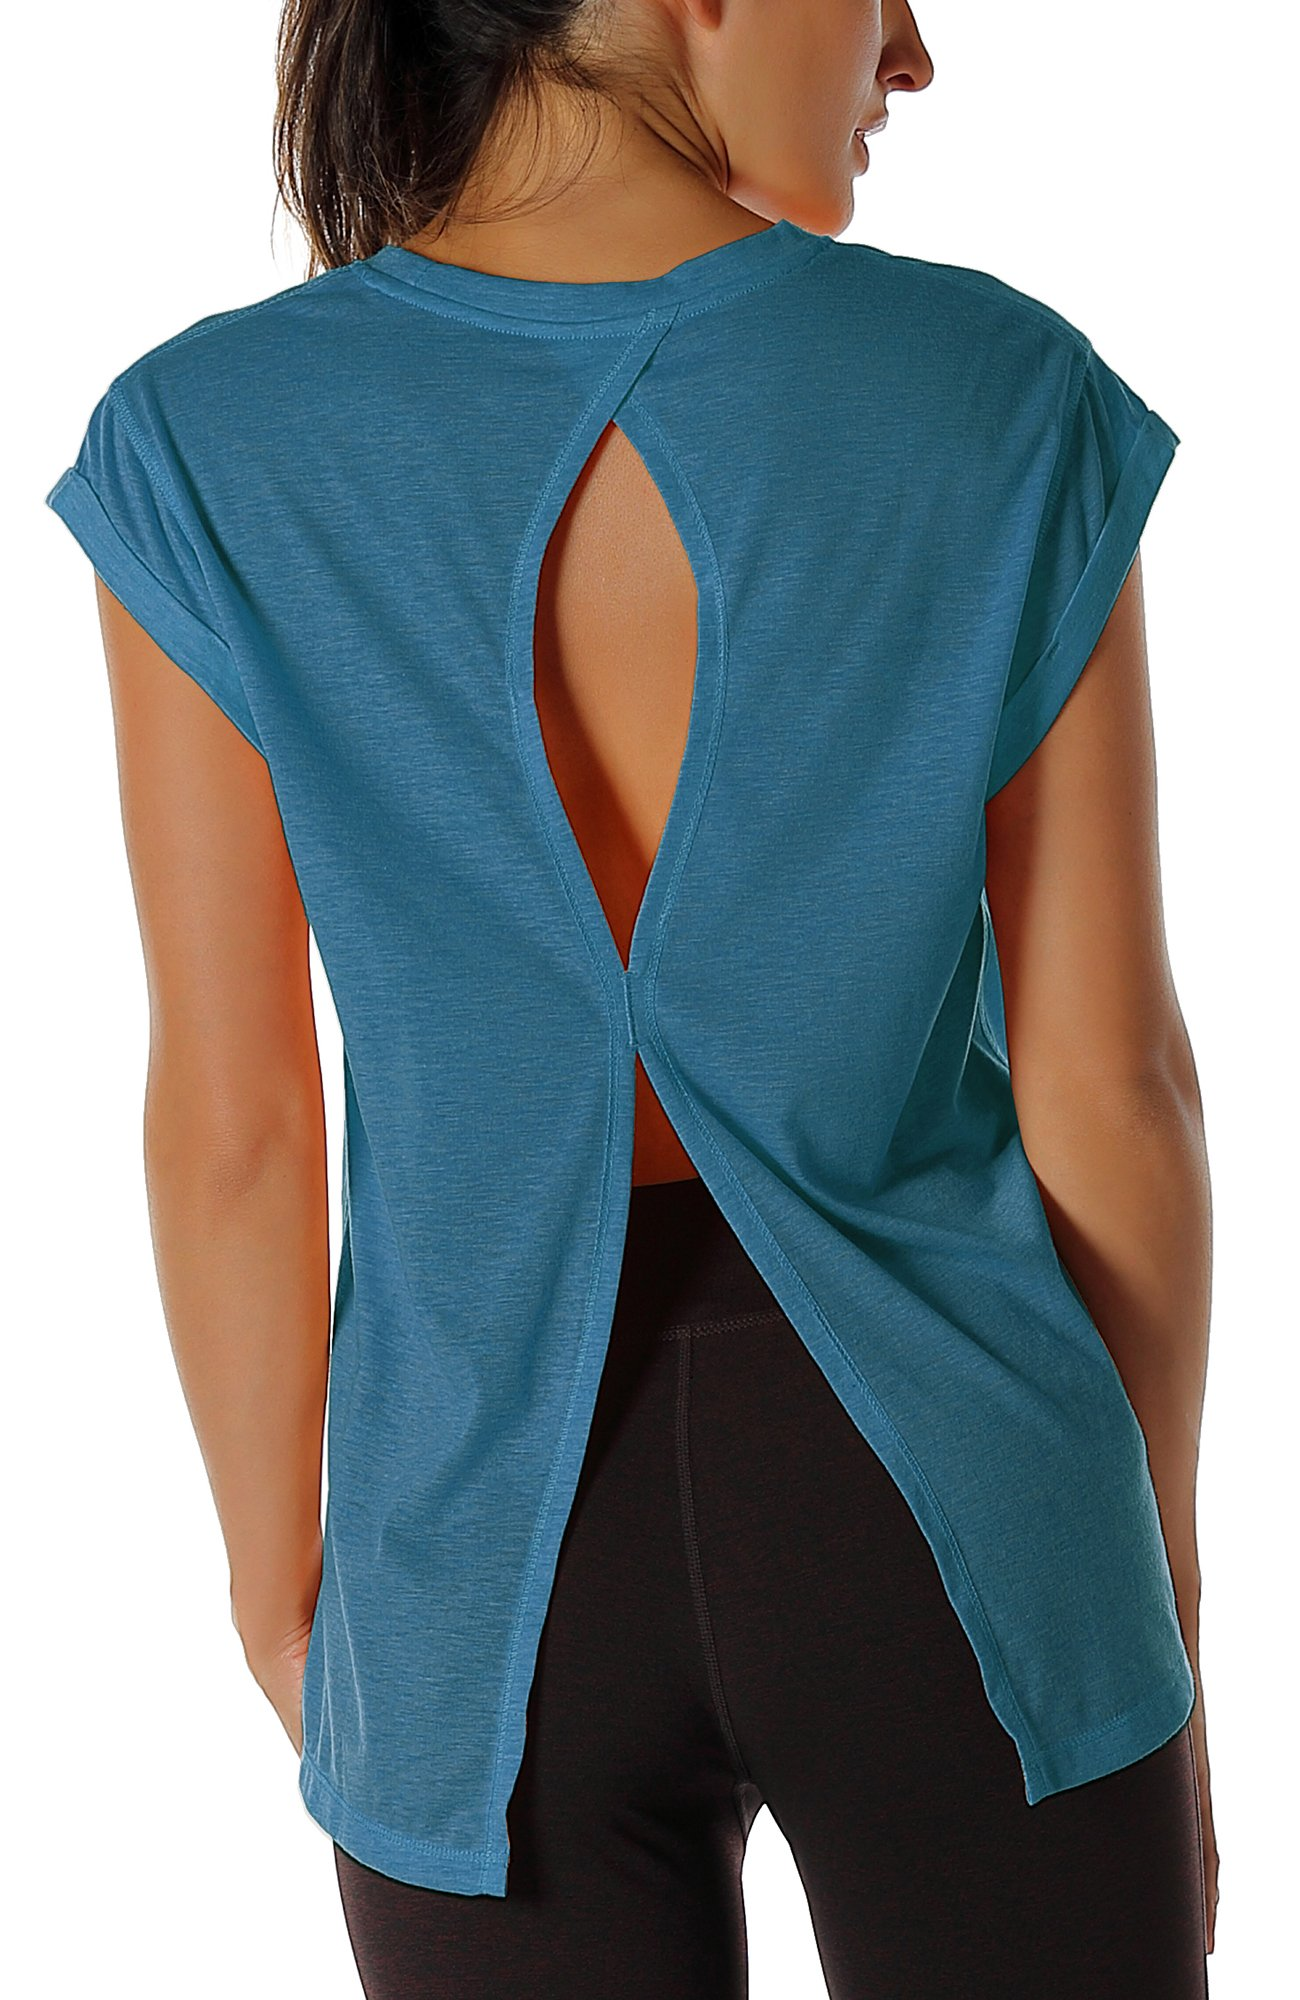 icyzone Open Back Workout Top Shirts - Yoga t-Shirts Activewear Exercise Tops For Women (M, Denim)